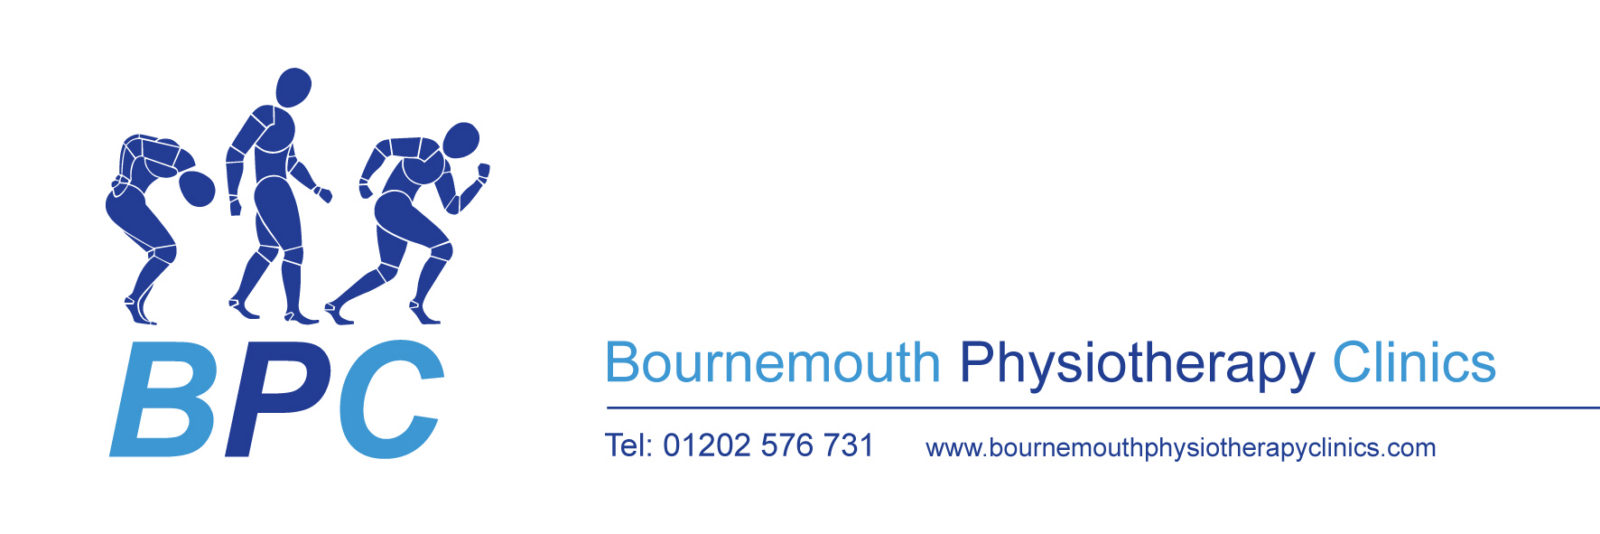 Bournemouth Physiotherapy Clinic